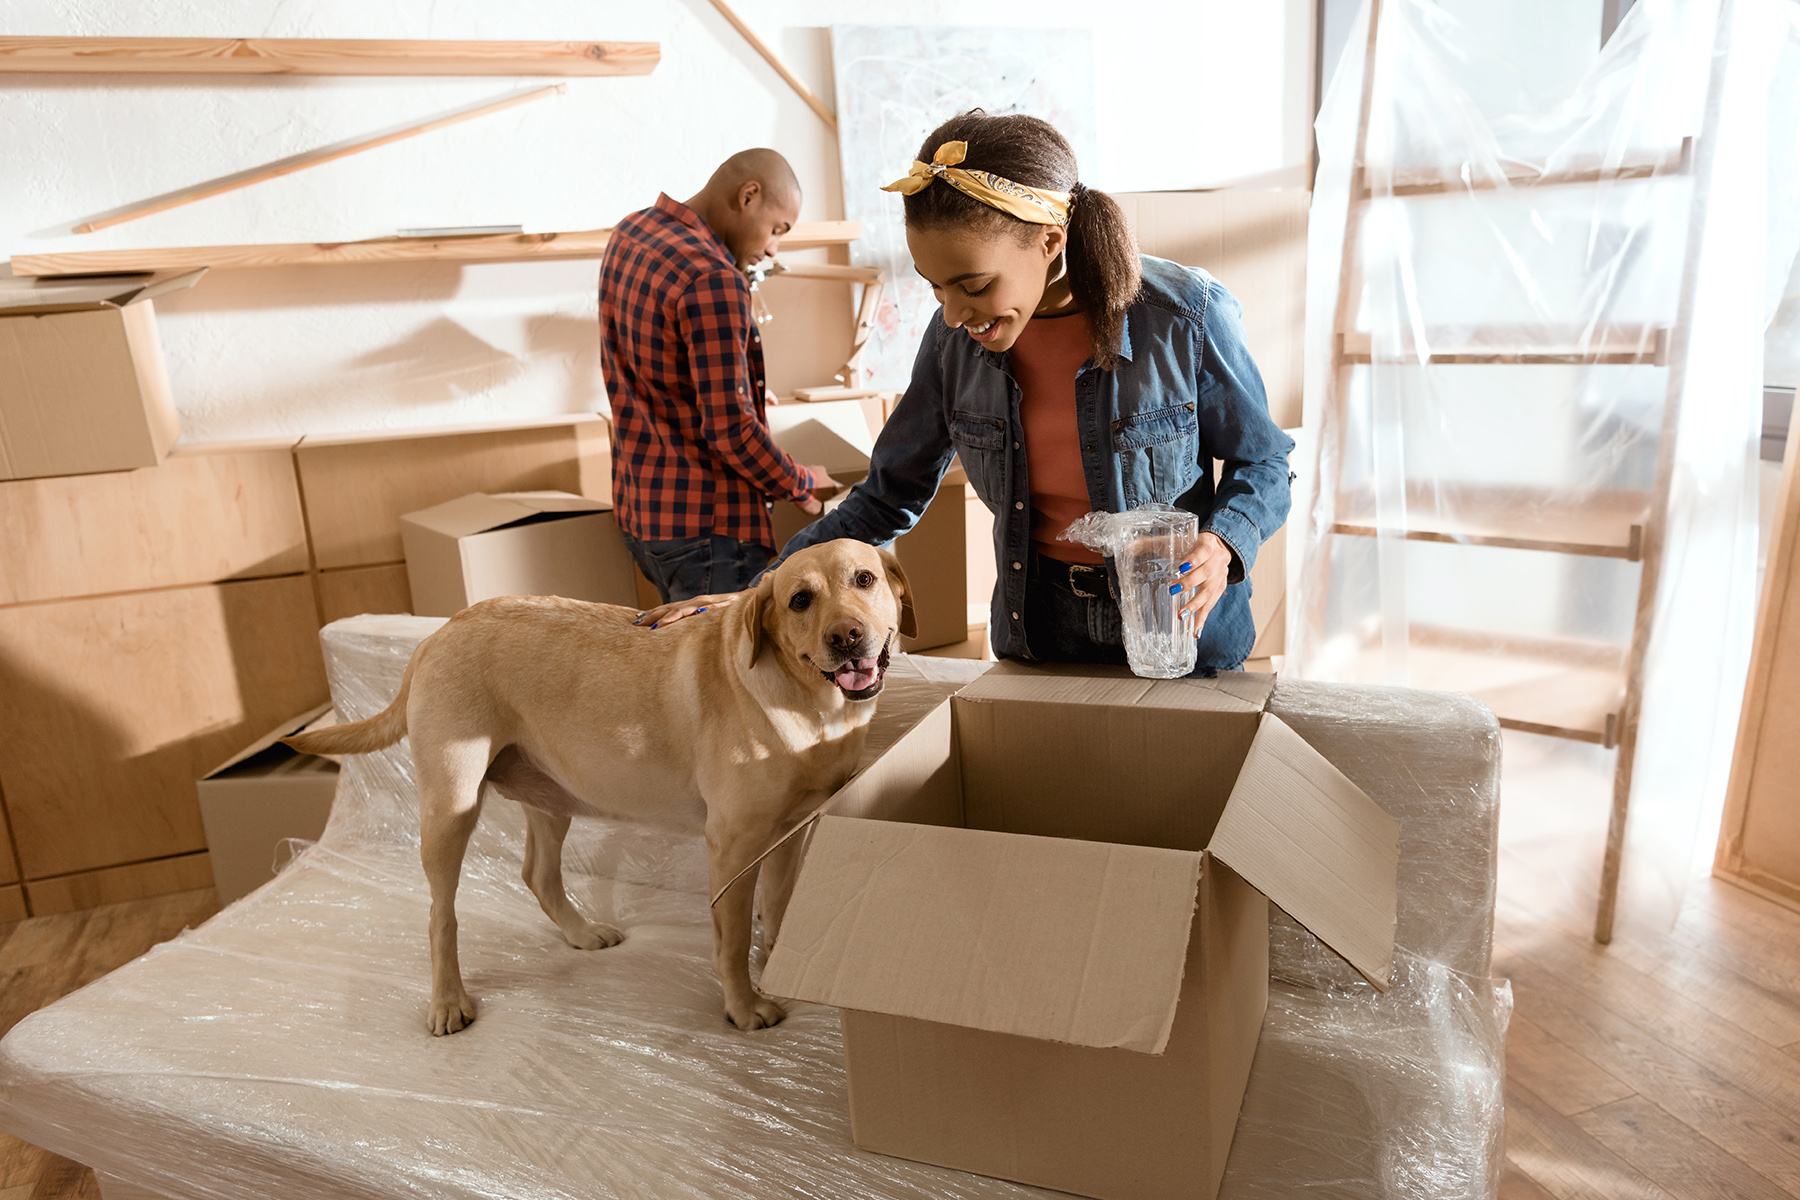 Moving out checklist: pets